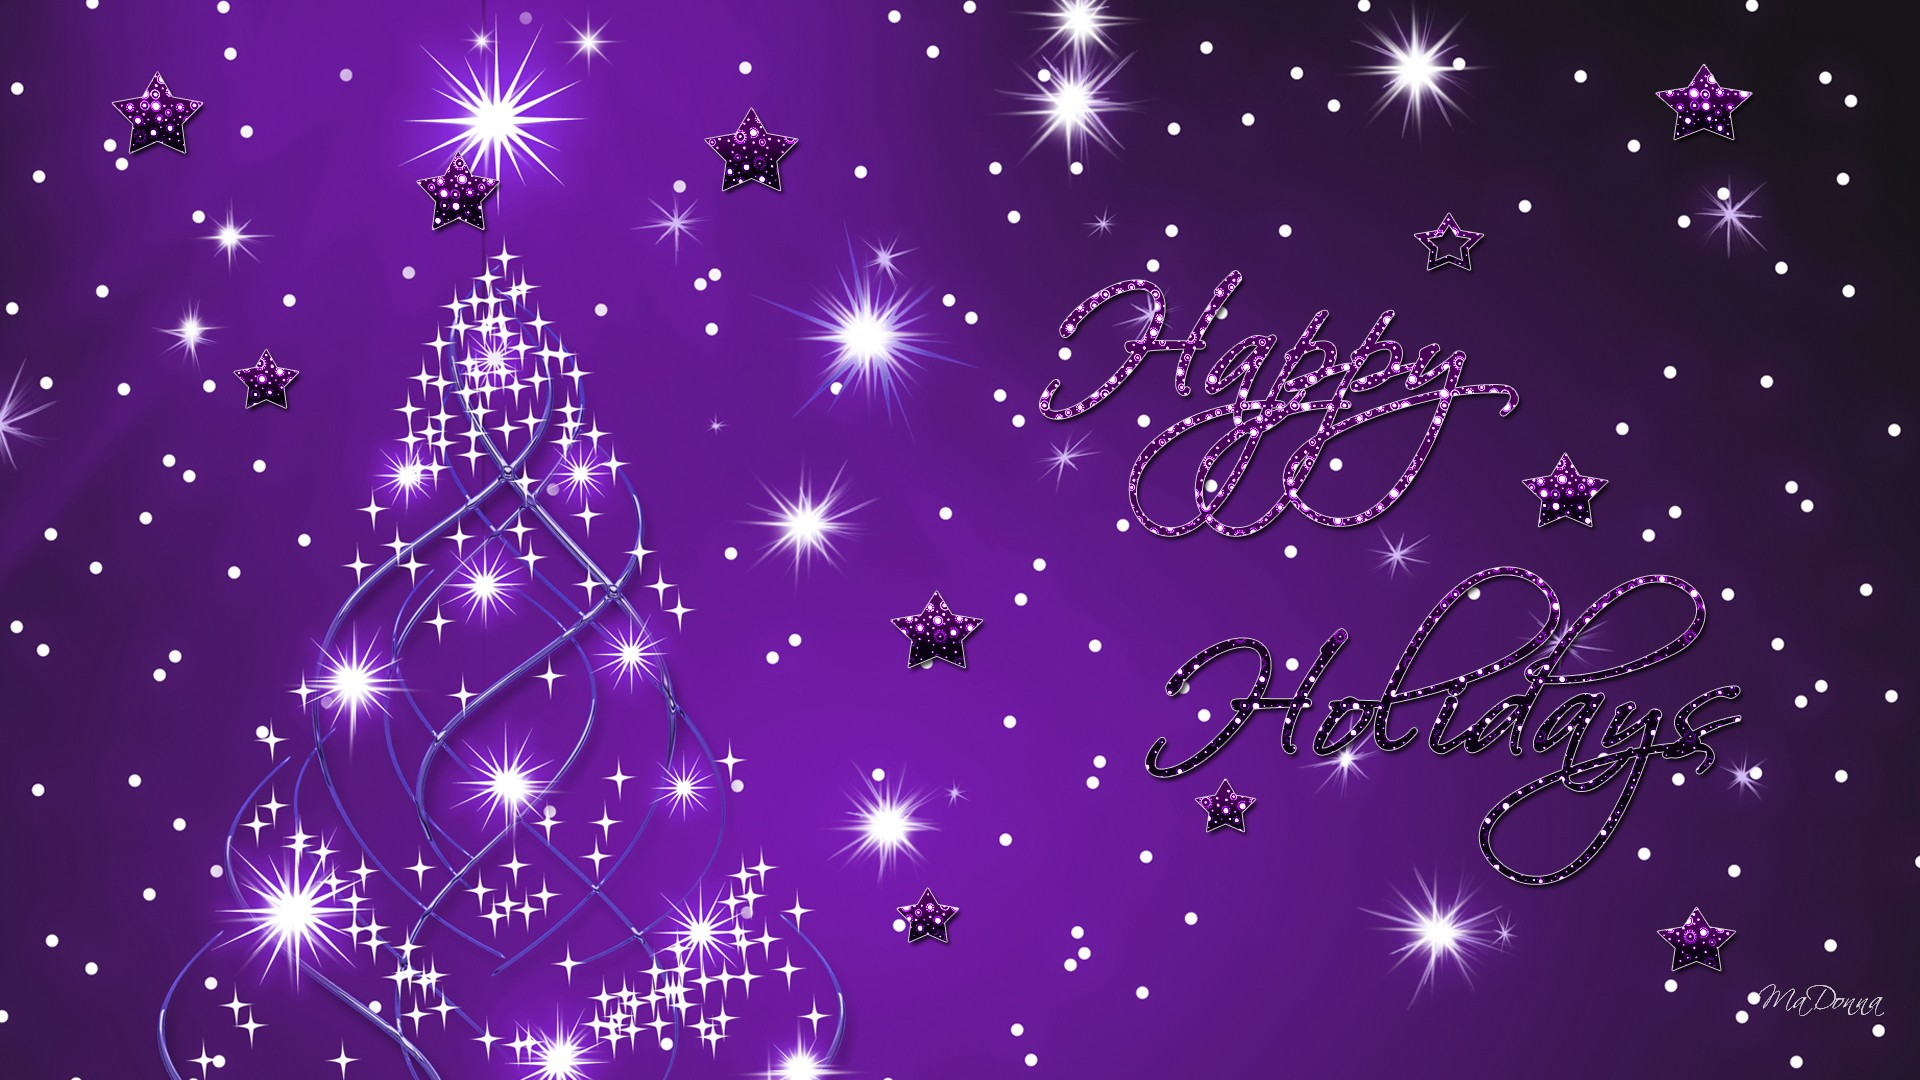 Happy-Holiday-Purple-wallpaper-ysmba-wallpaper-wp4807108